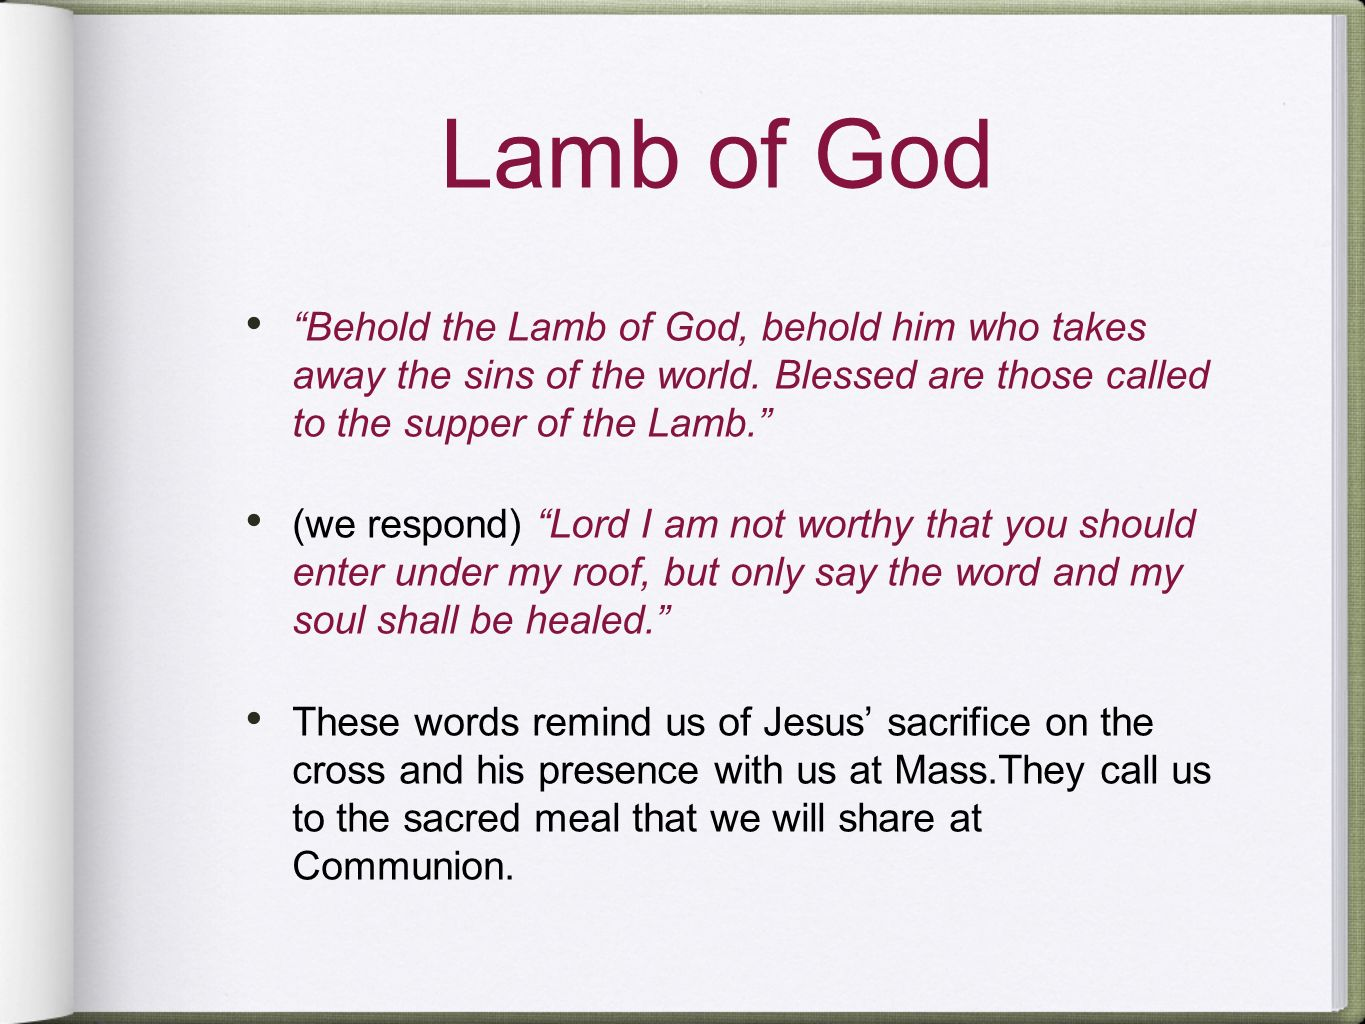 Lamb of God Behold the Lamb of God, behold him who takes away the sins of the world. Blessed are those called to the supper of the Lamb. (we respond)